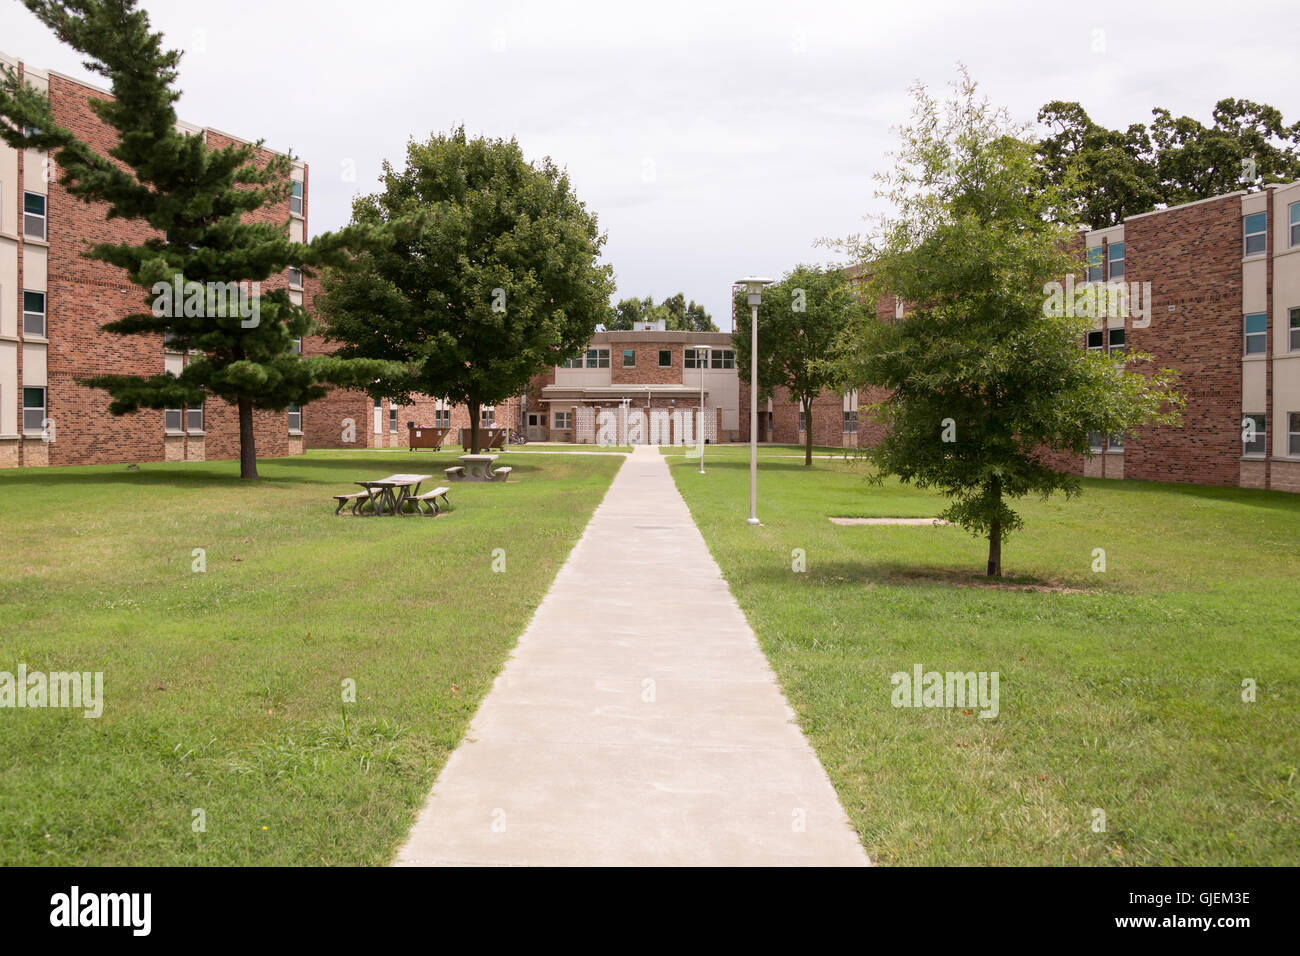 Evangel University, Springfield MO, Assemblies of God Liberal Arts College. Campus images. - Stock Image